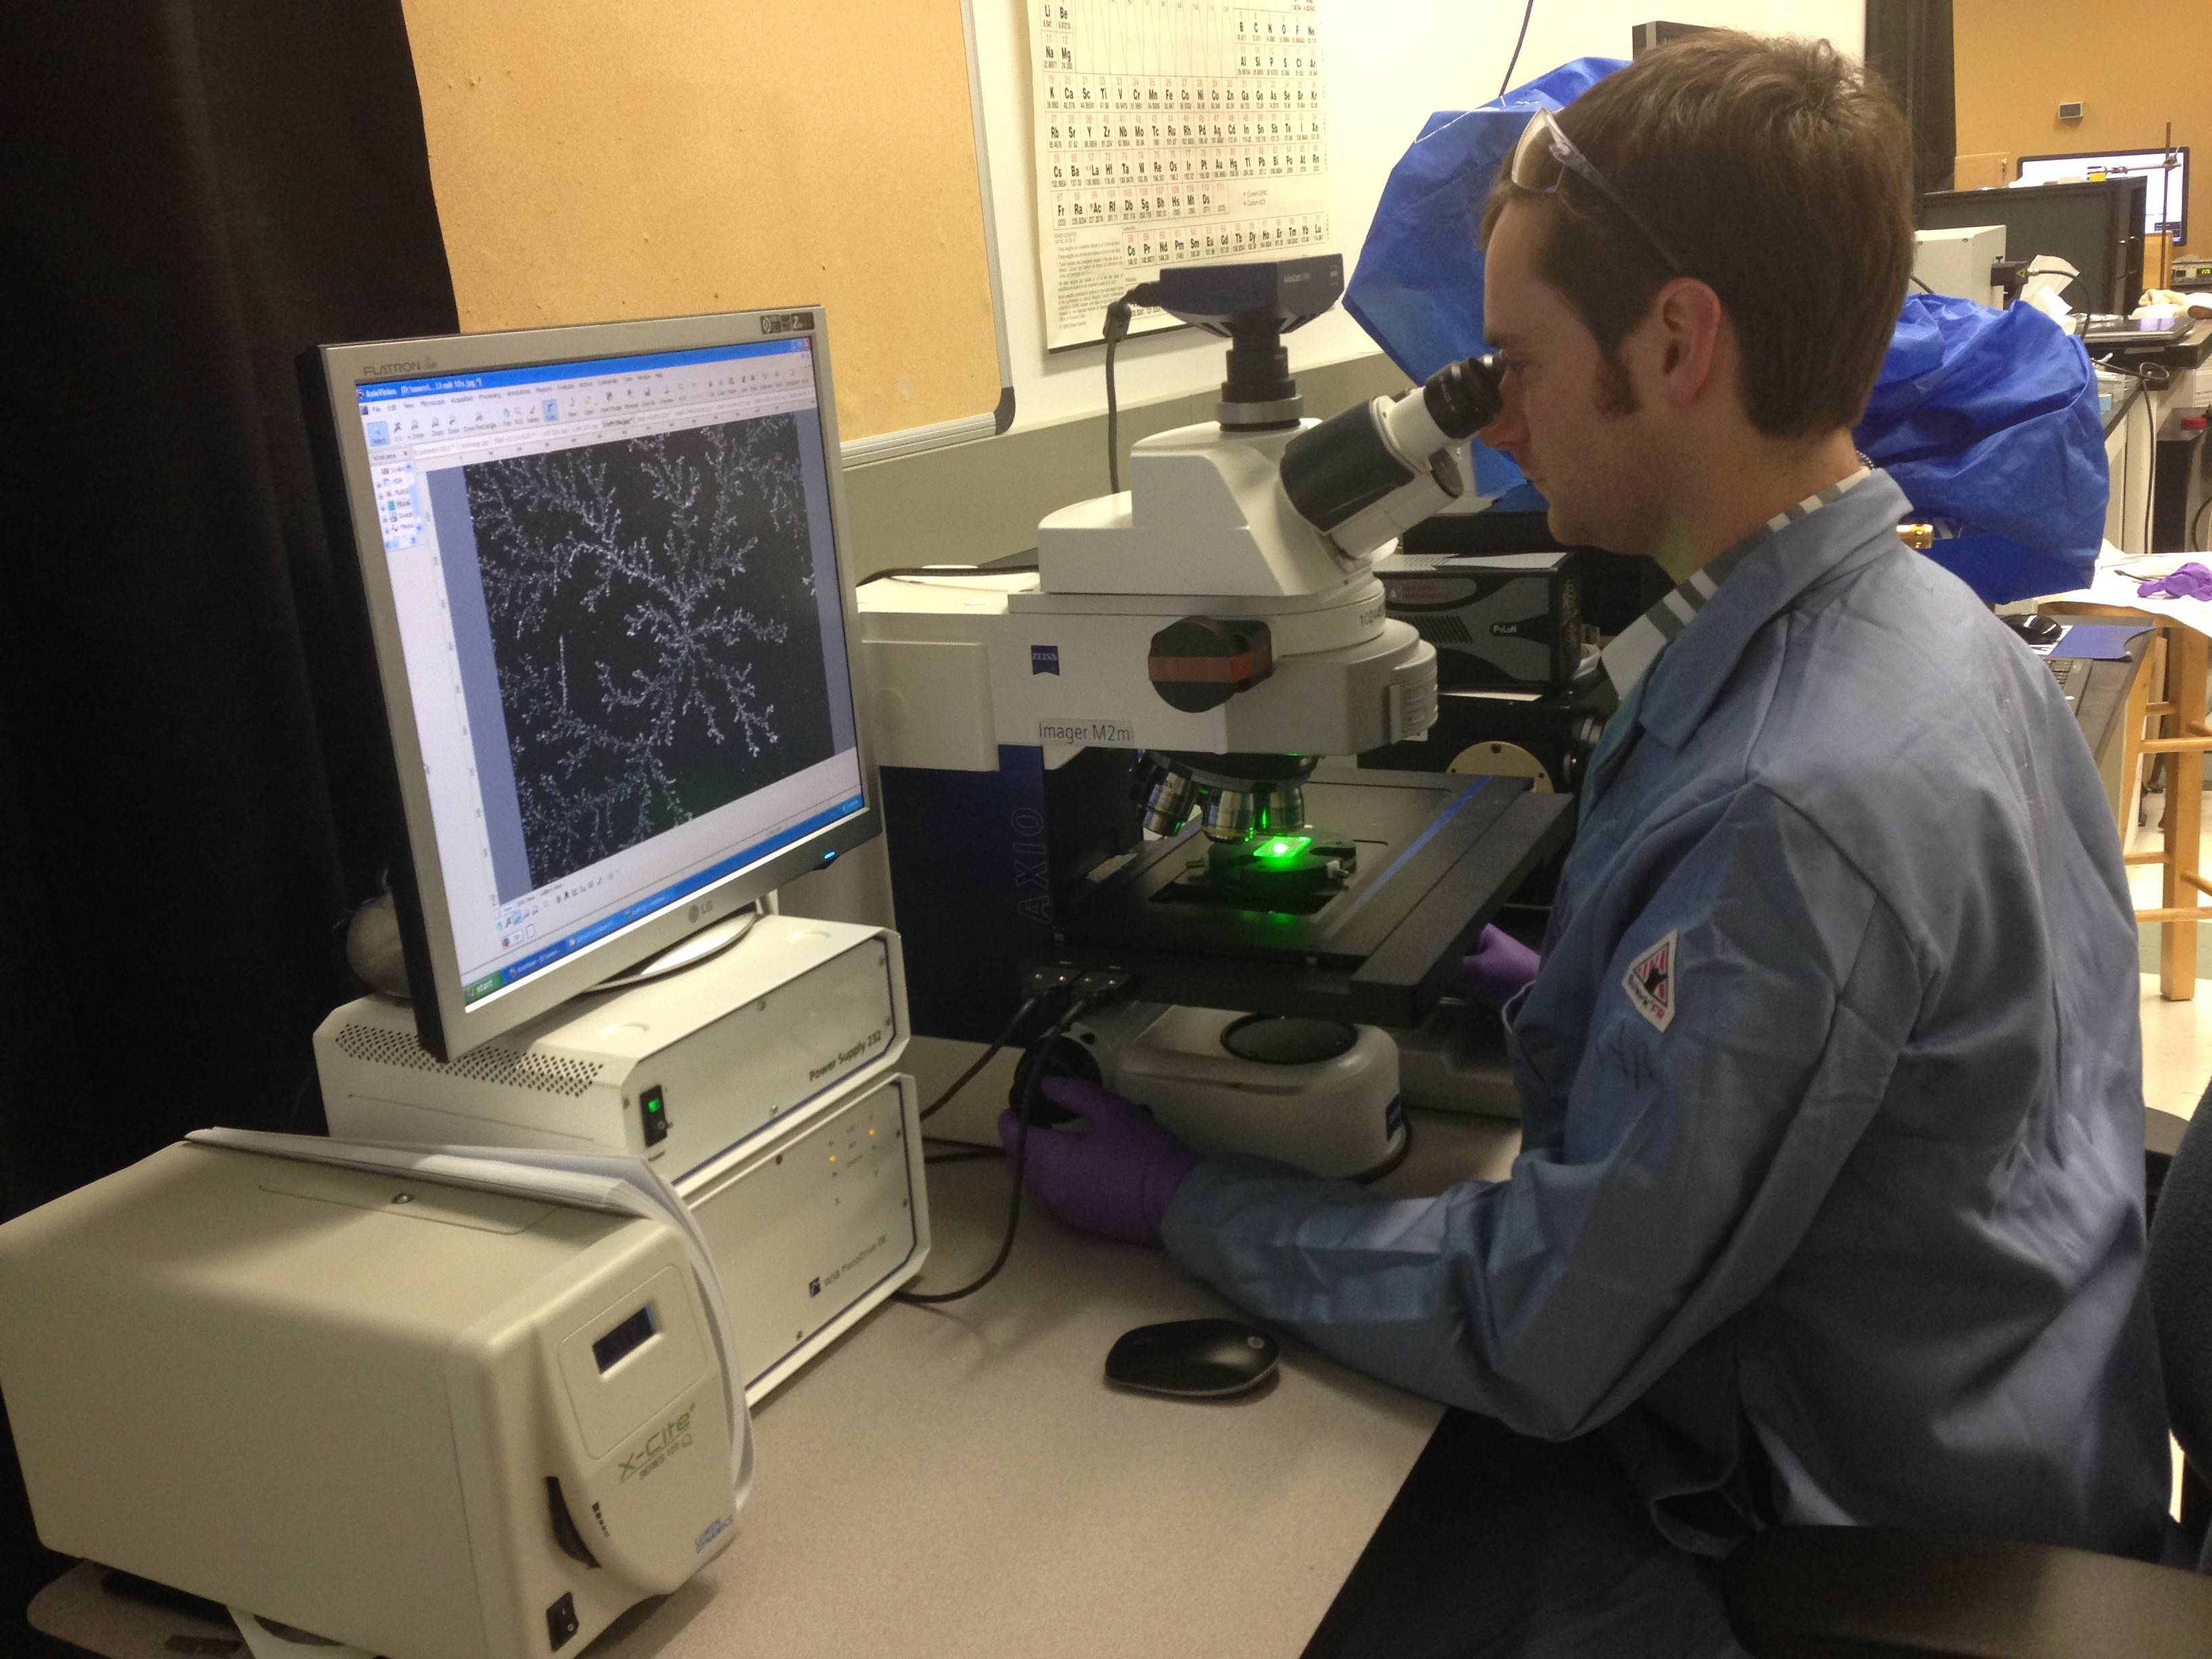 Dr. Keith Brown uses an optical microscope to examine the salt crystal seen on the monitor. The optical microscope uses a system of lenses and light to magnify very tiny things so they can be inspected closely.